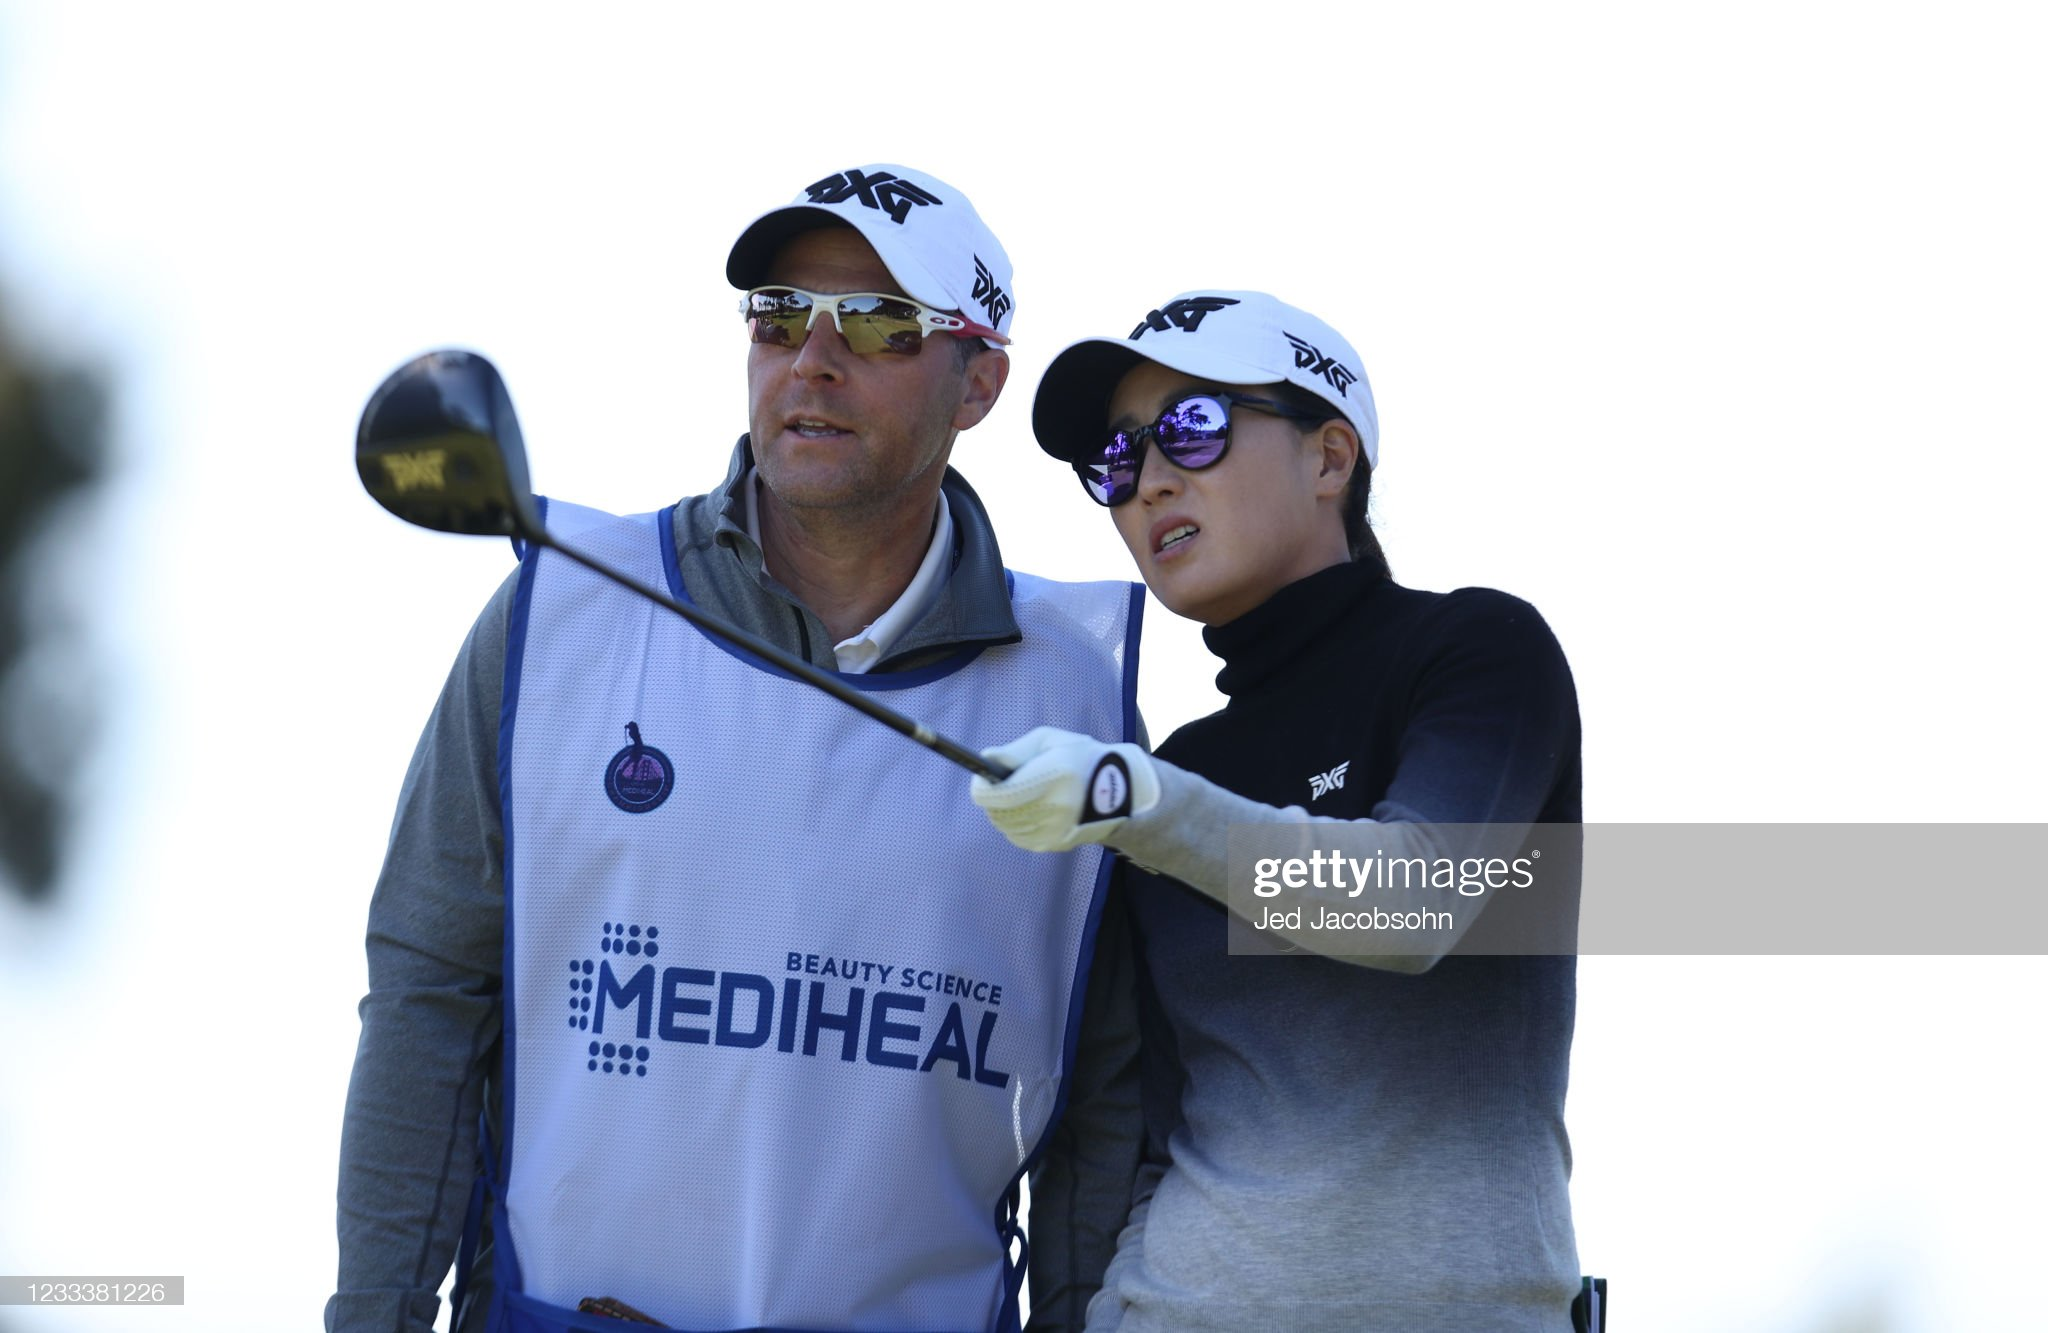 https://media.gettyimages.com/photos/jennifer-song-of-the-united-states-hits-from-the-8th-hole-during-the-picture-id1233381226?s=2048x2048